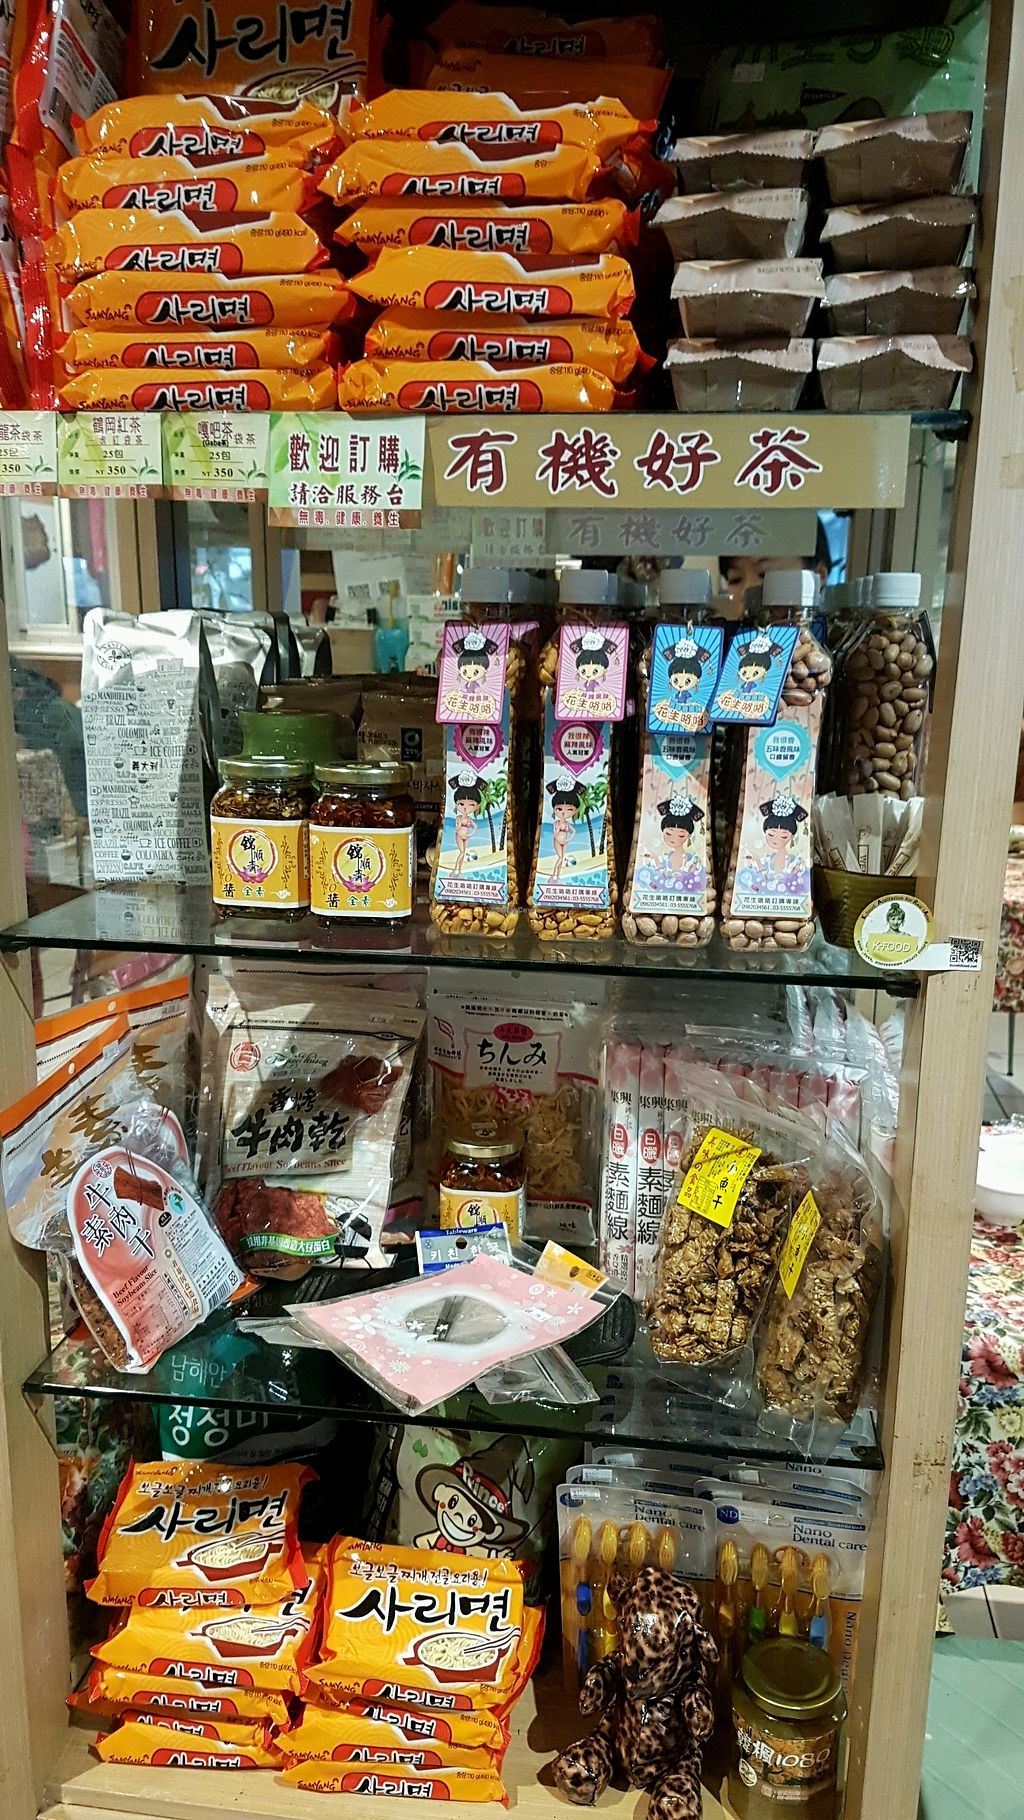 """Photo of Han Fong 1080  by <a href=""""/members/profile/WanPing"""">WanPing</a> <br/>Some noodles and peanuts for sale <br/> January 7, 2018  - <a href='/contact/abuse/image/92070/343850'>Report</a>"""